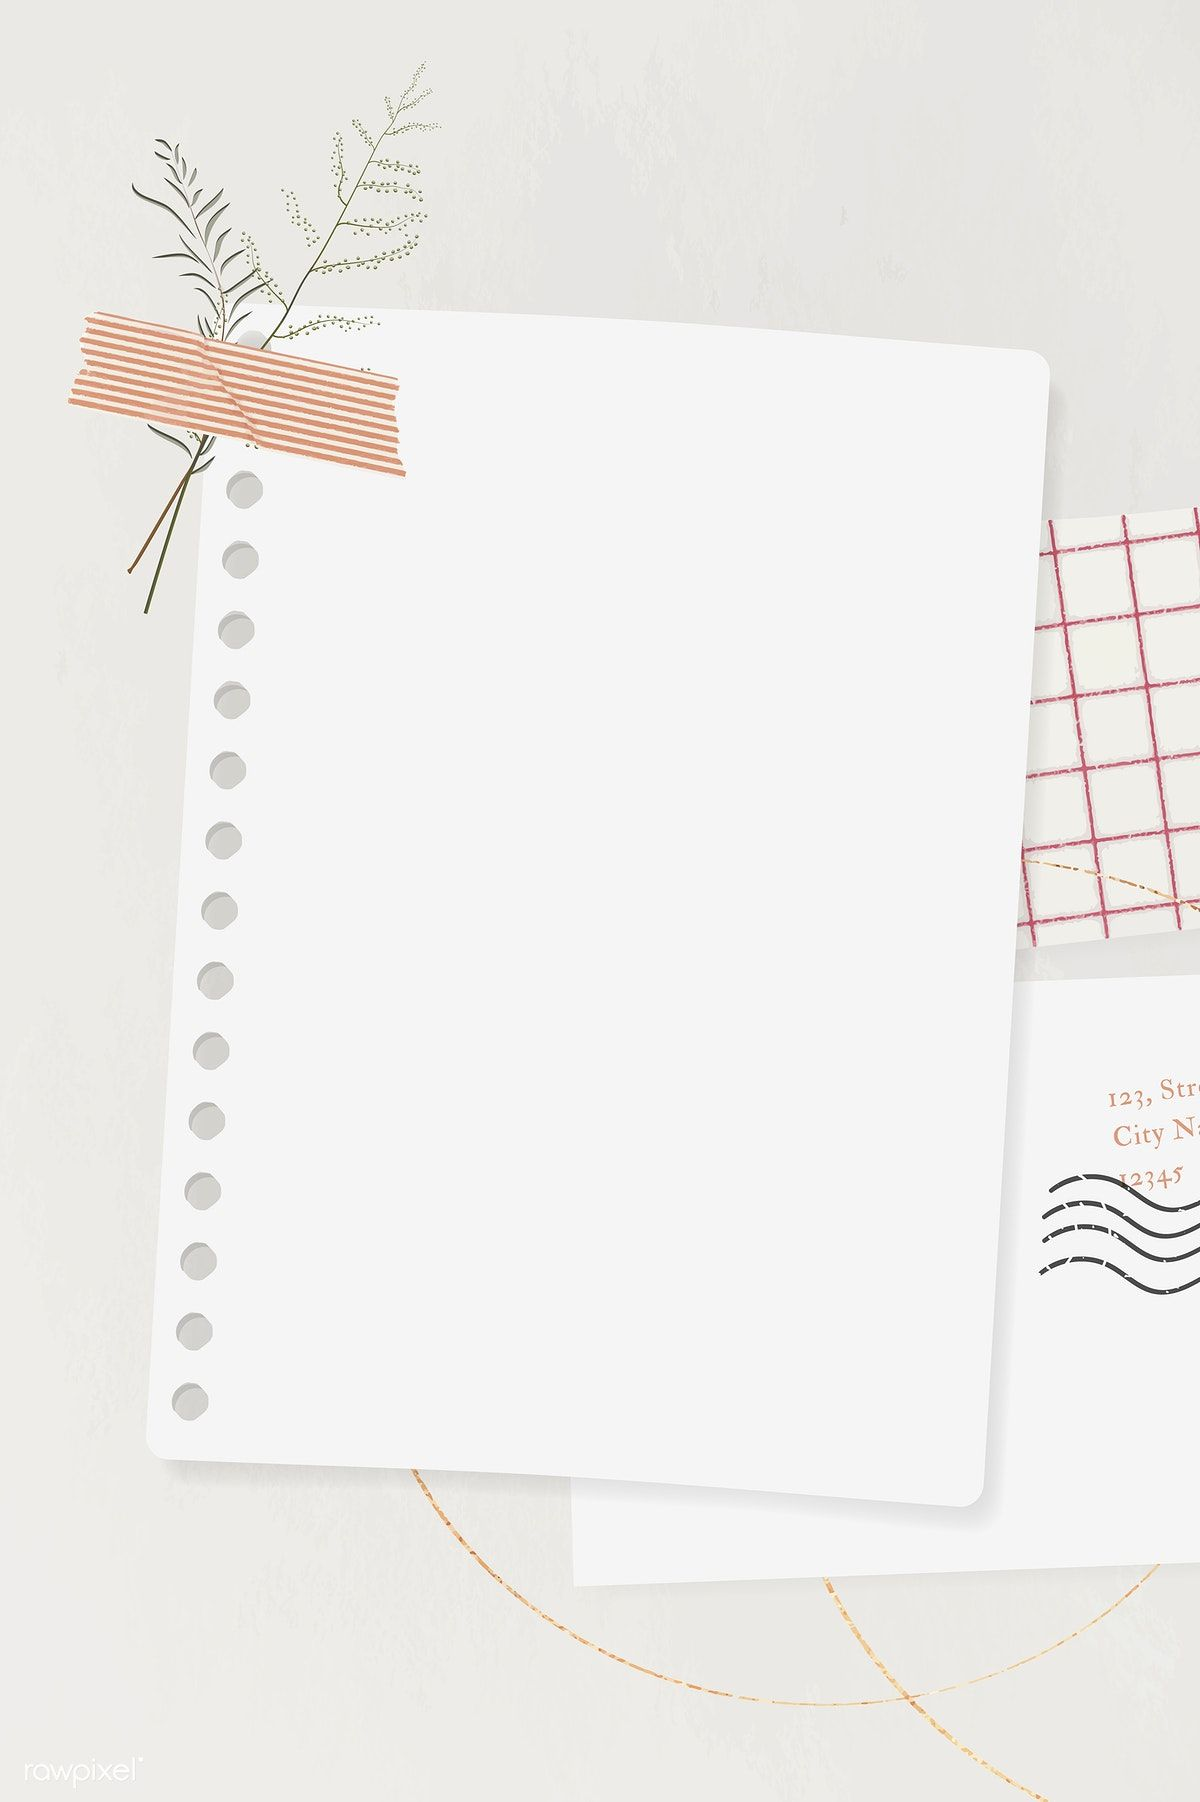 Download premium vector of Blank paper with washi tape template vector by Ning about notepaper, flowers collage, taped poster, note leaf, and collage paper template 1205014